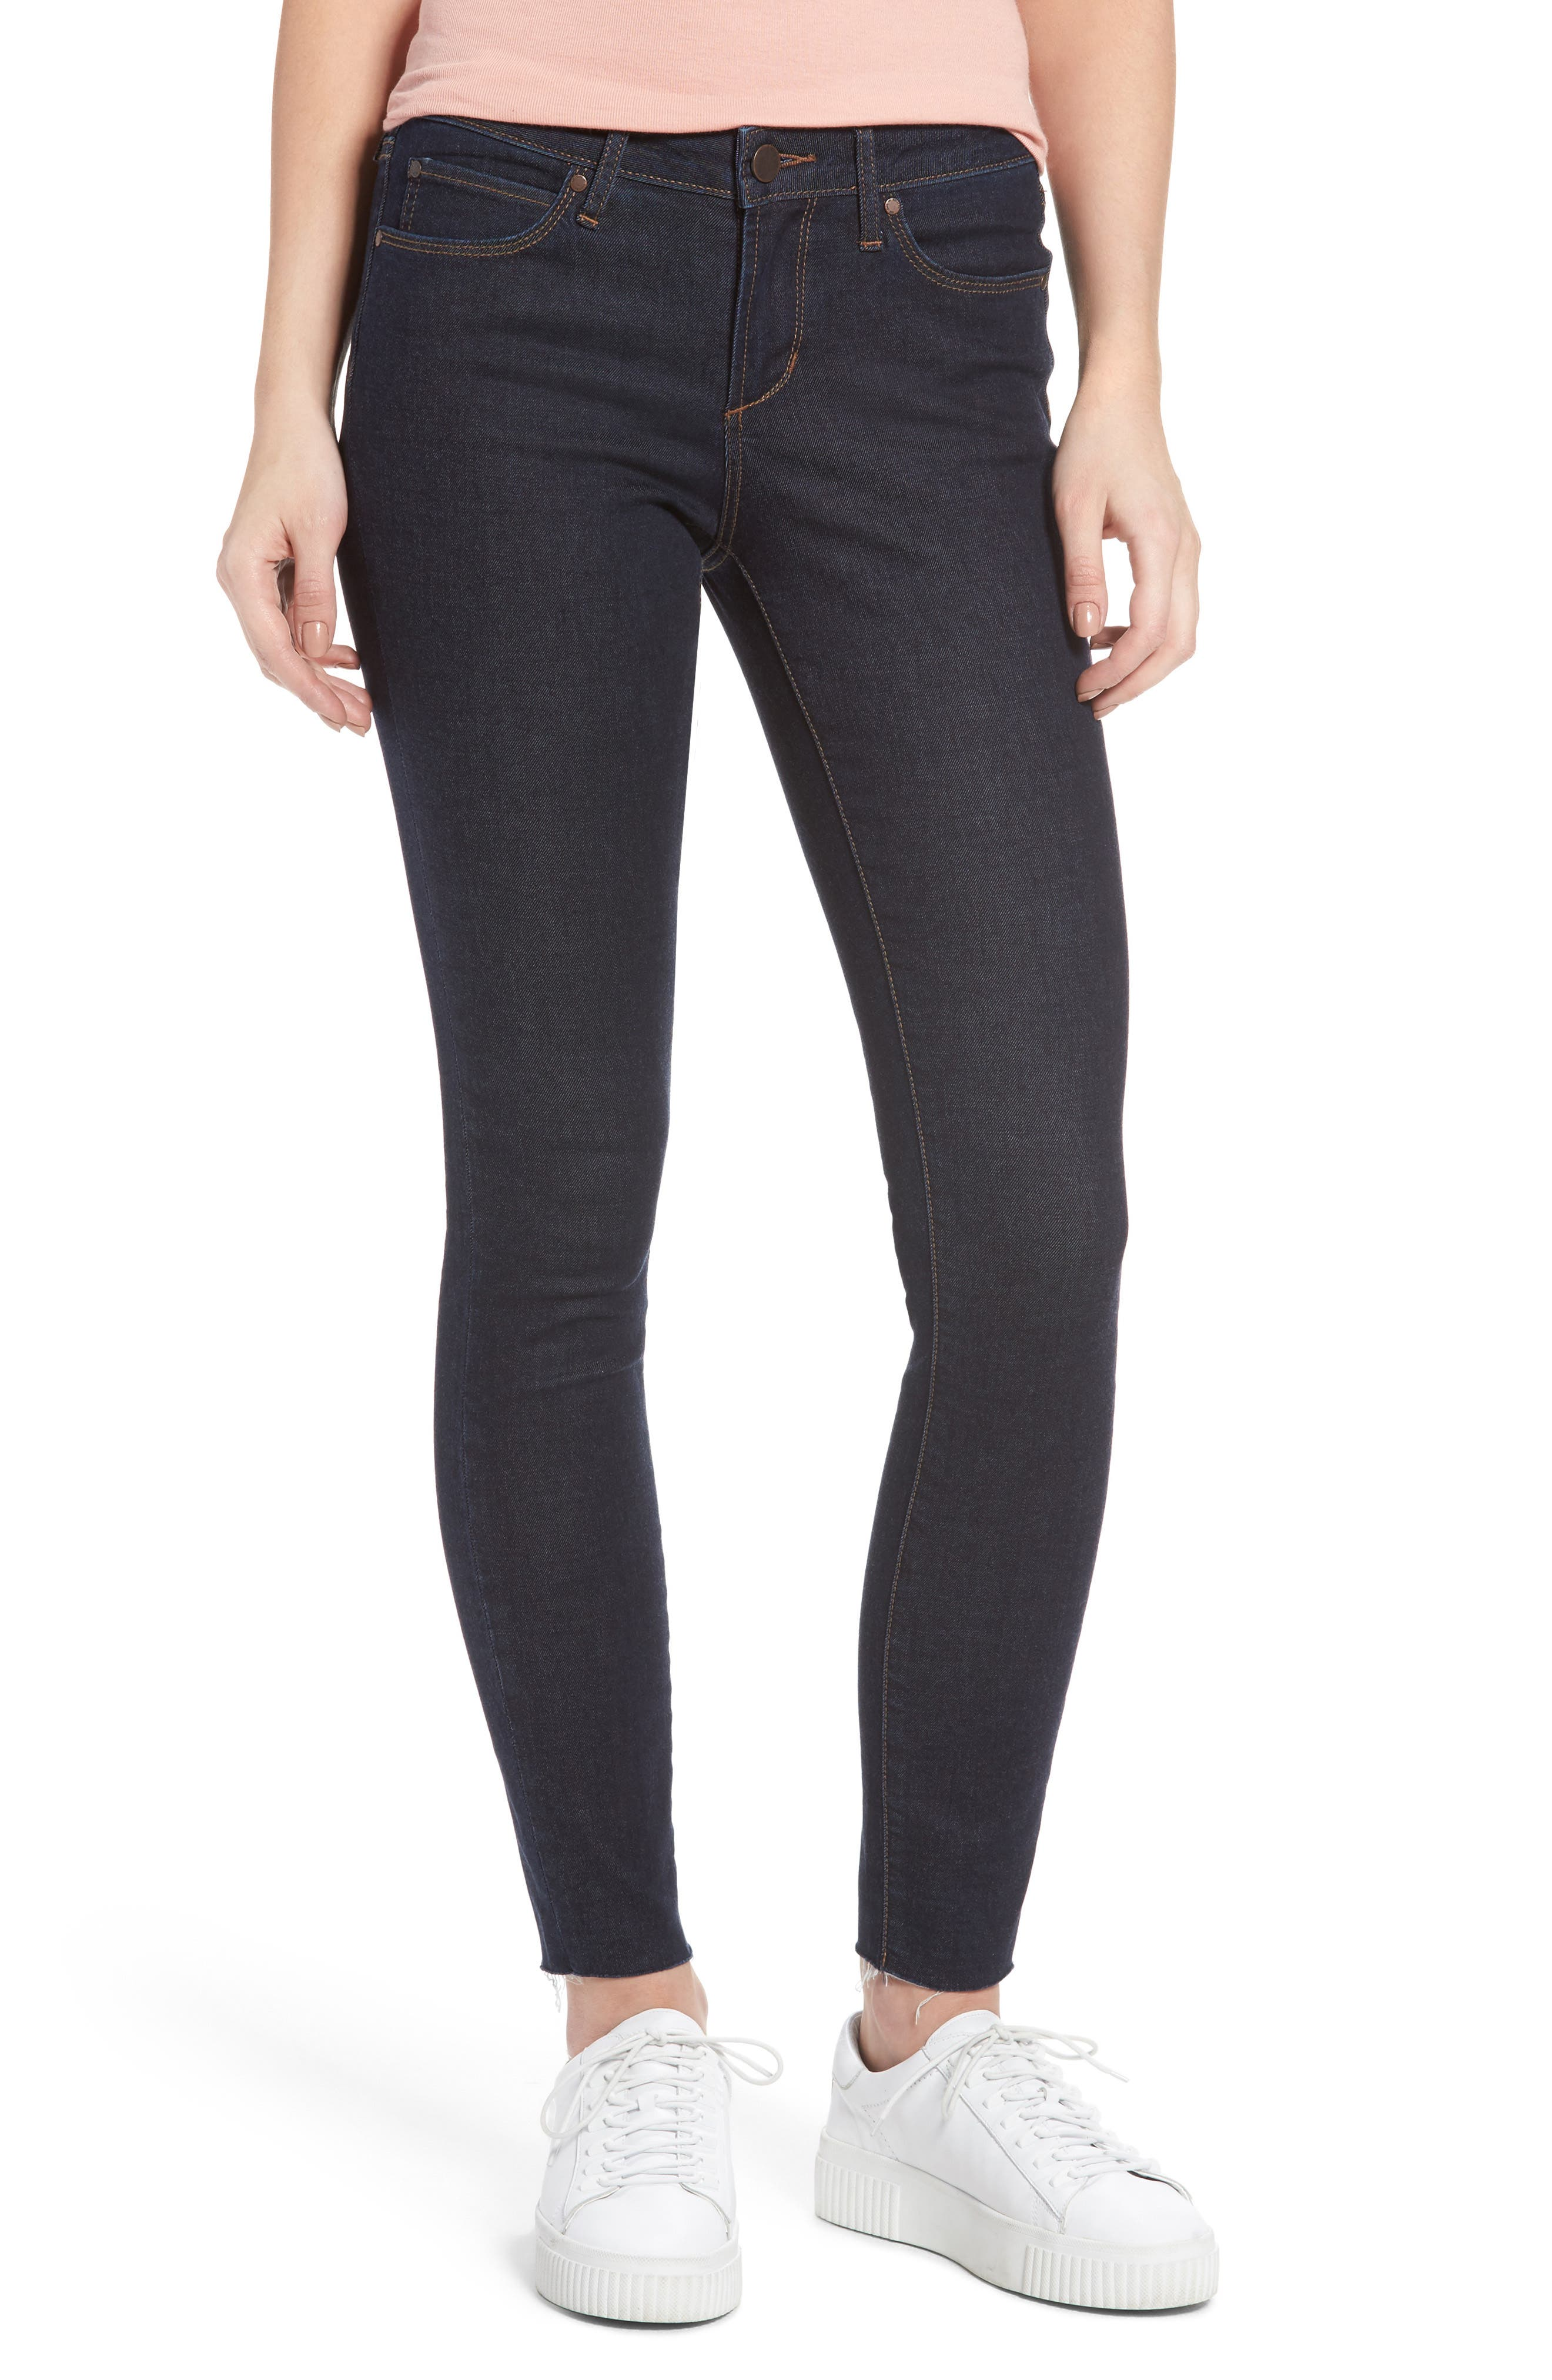 Alternate Image 1 Selected - Articles of Society Sarah Ankle Skinny Jeans (Elm)